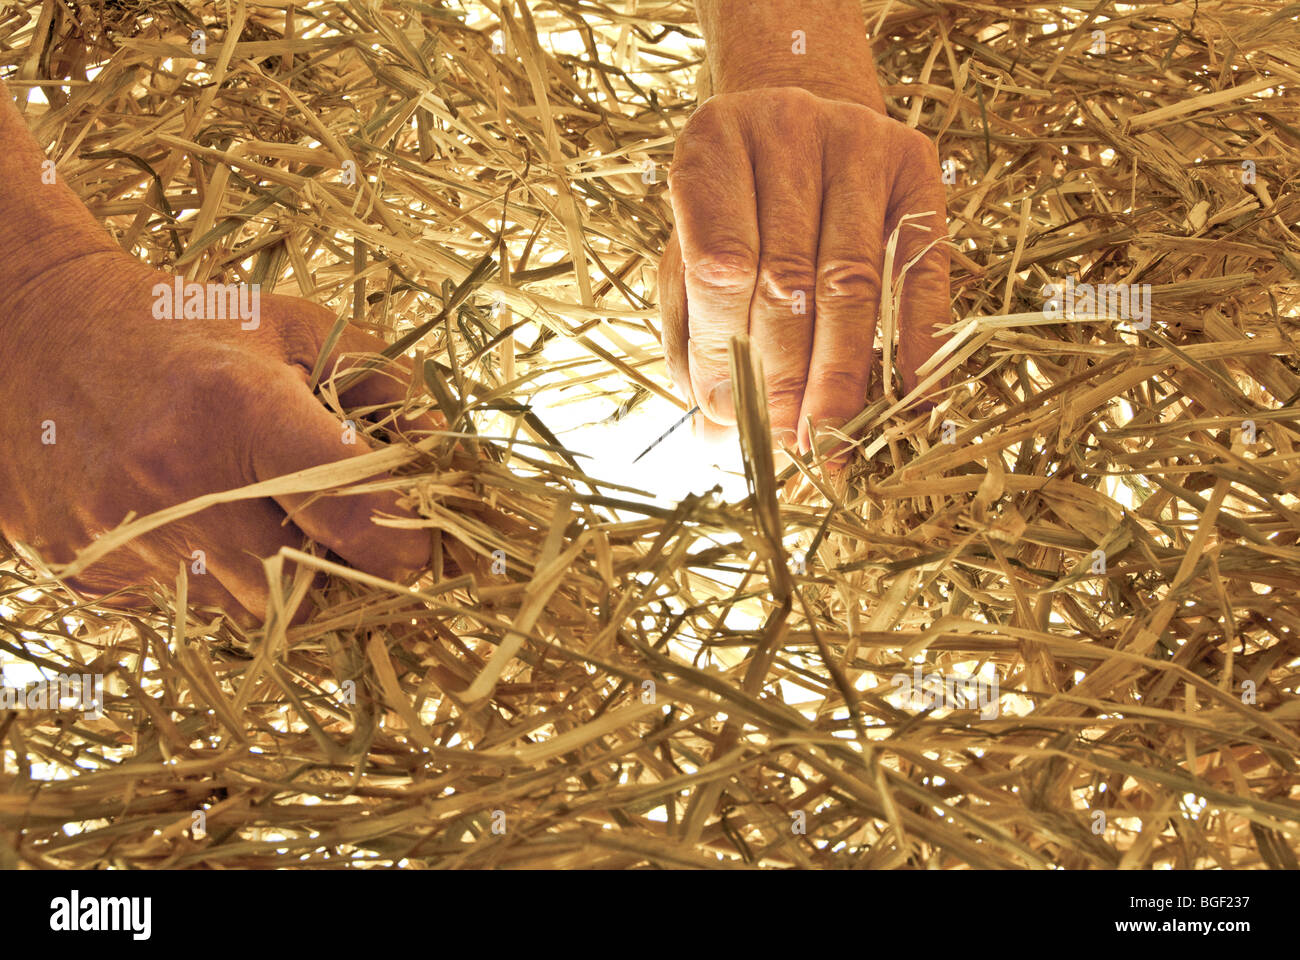 Man searching for a needle in a haystack - Stock Image